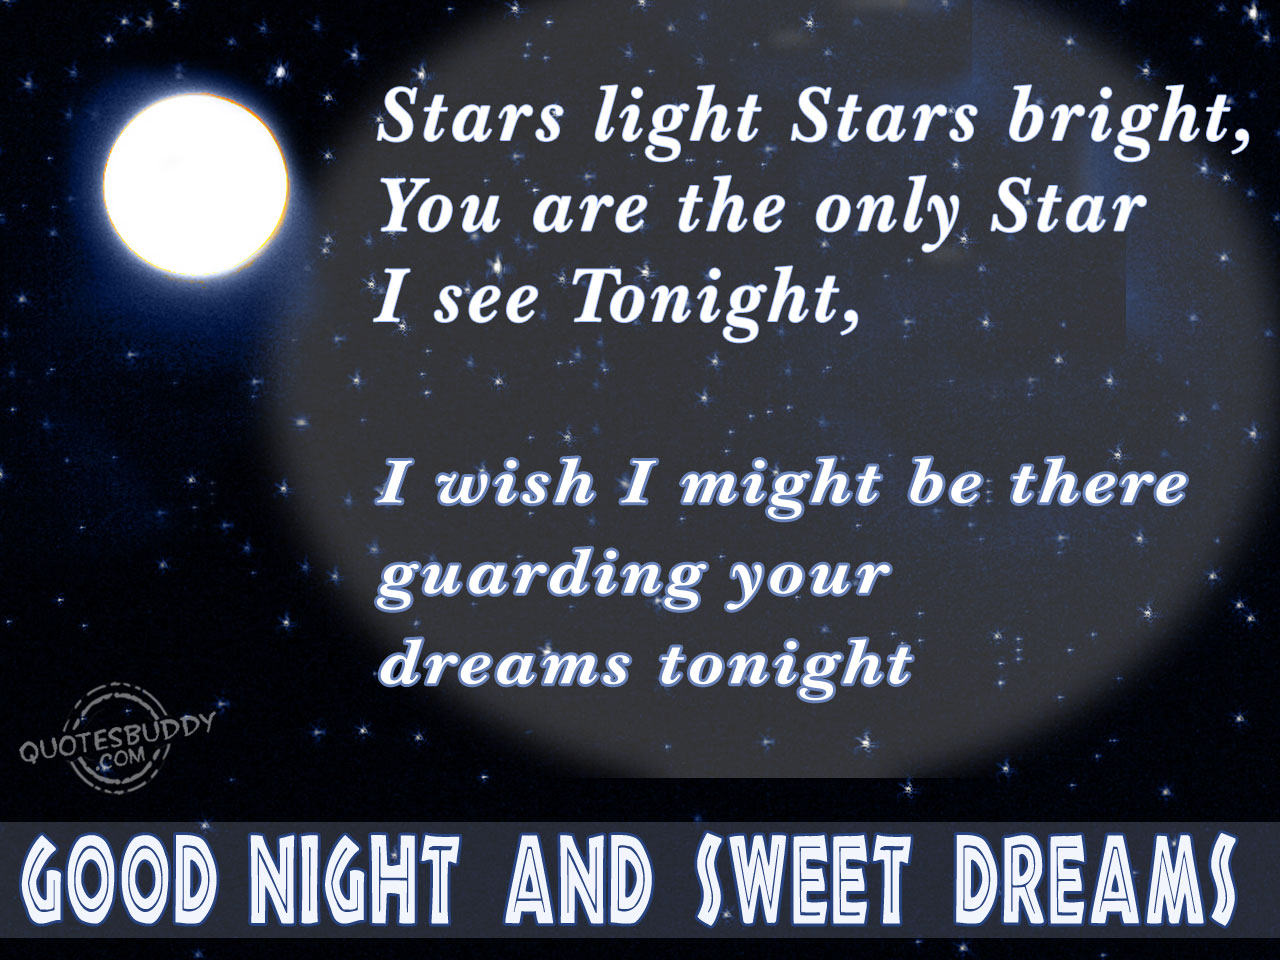 Romantic Good Night Love Quotes stars light stars bright you are the only star